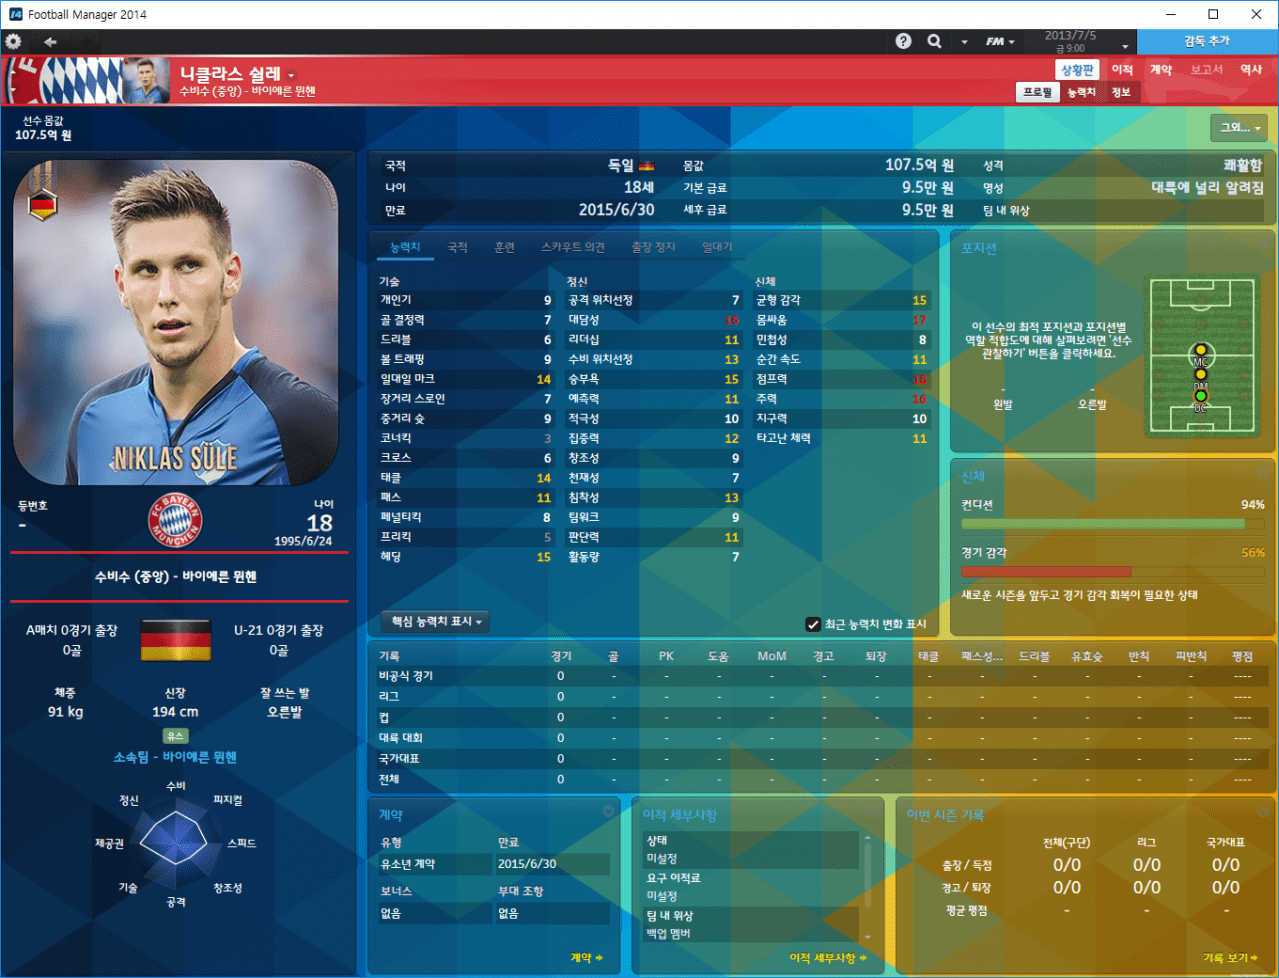 sule.PNG [14.3.1] Football Manager 2014 FMDONG ROSTER 17-18 Transfer & CA/PA ROSTER BETA v0.1